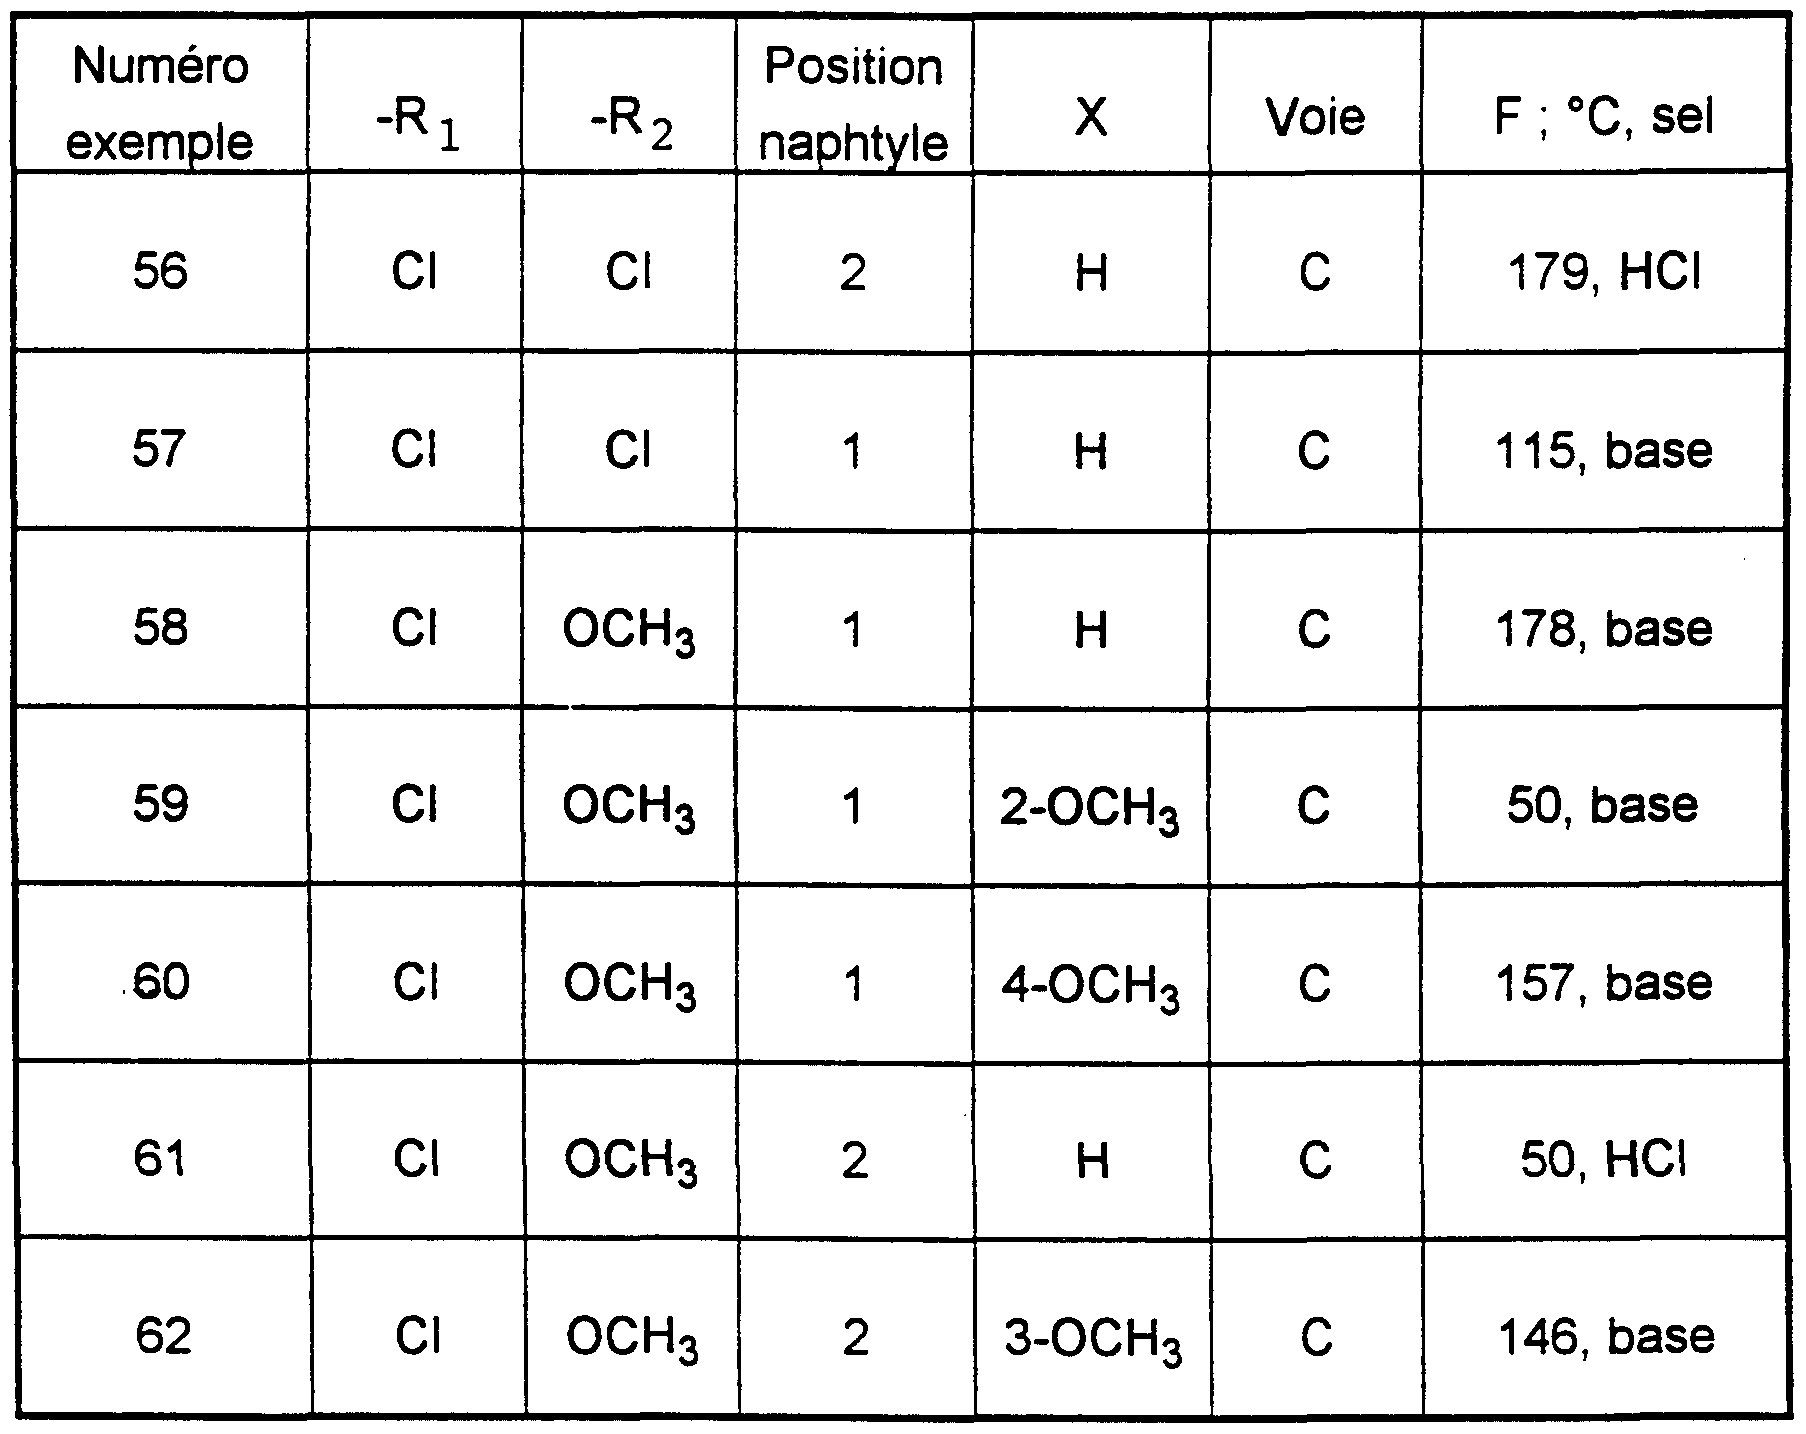 ci 7 applications of derivatives Derivatives and irradiation, the combination index (ci) was calculated (table 1) this revealed that values of combination indices tended to decrease with growing effect.